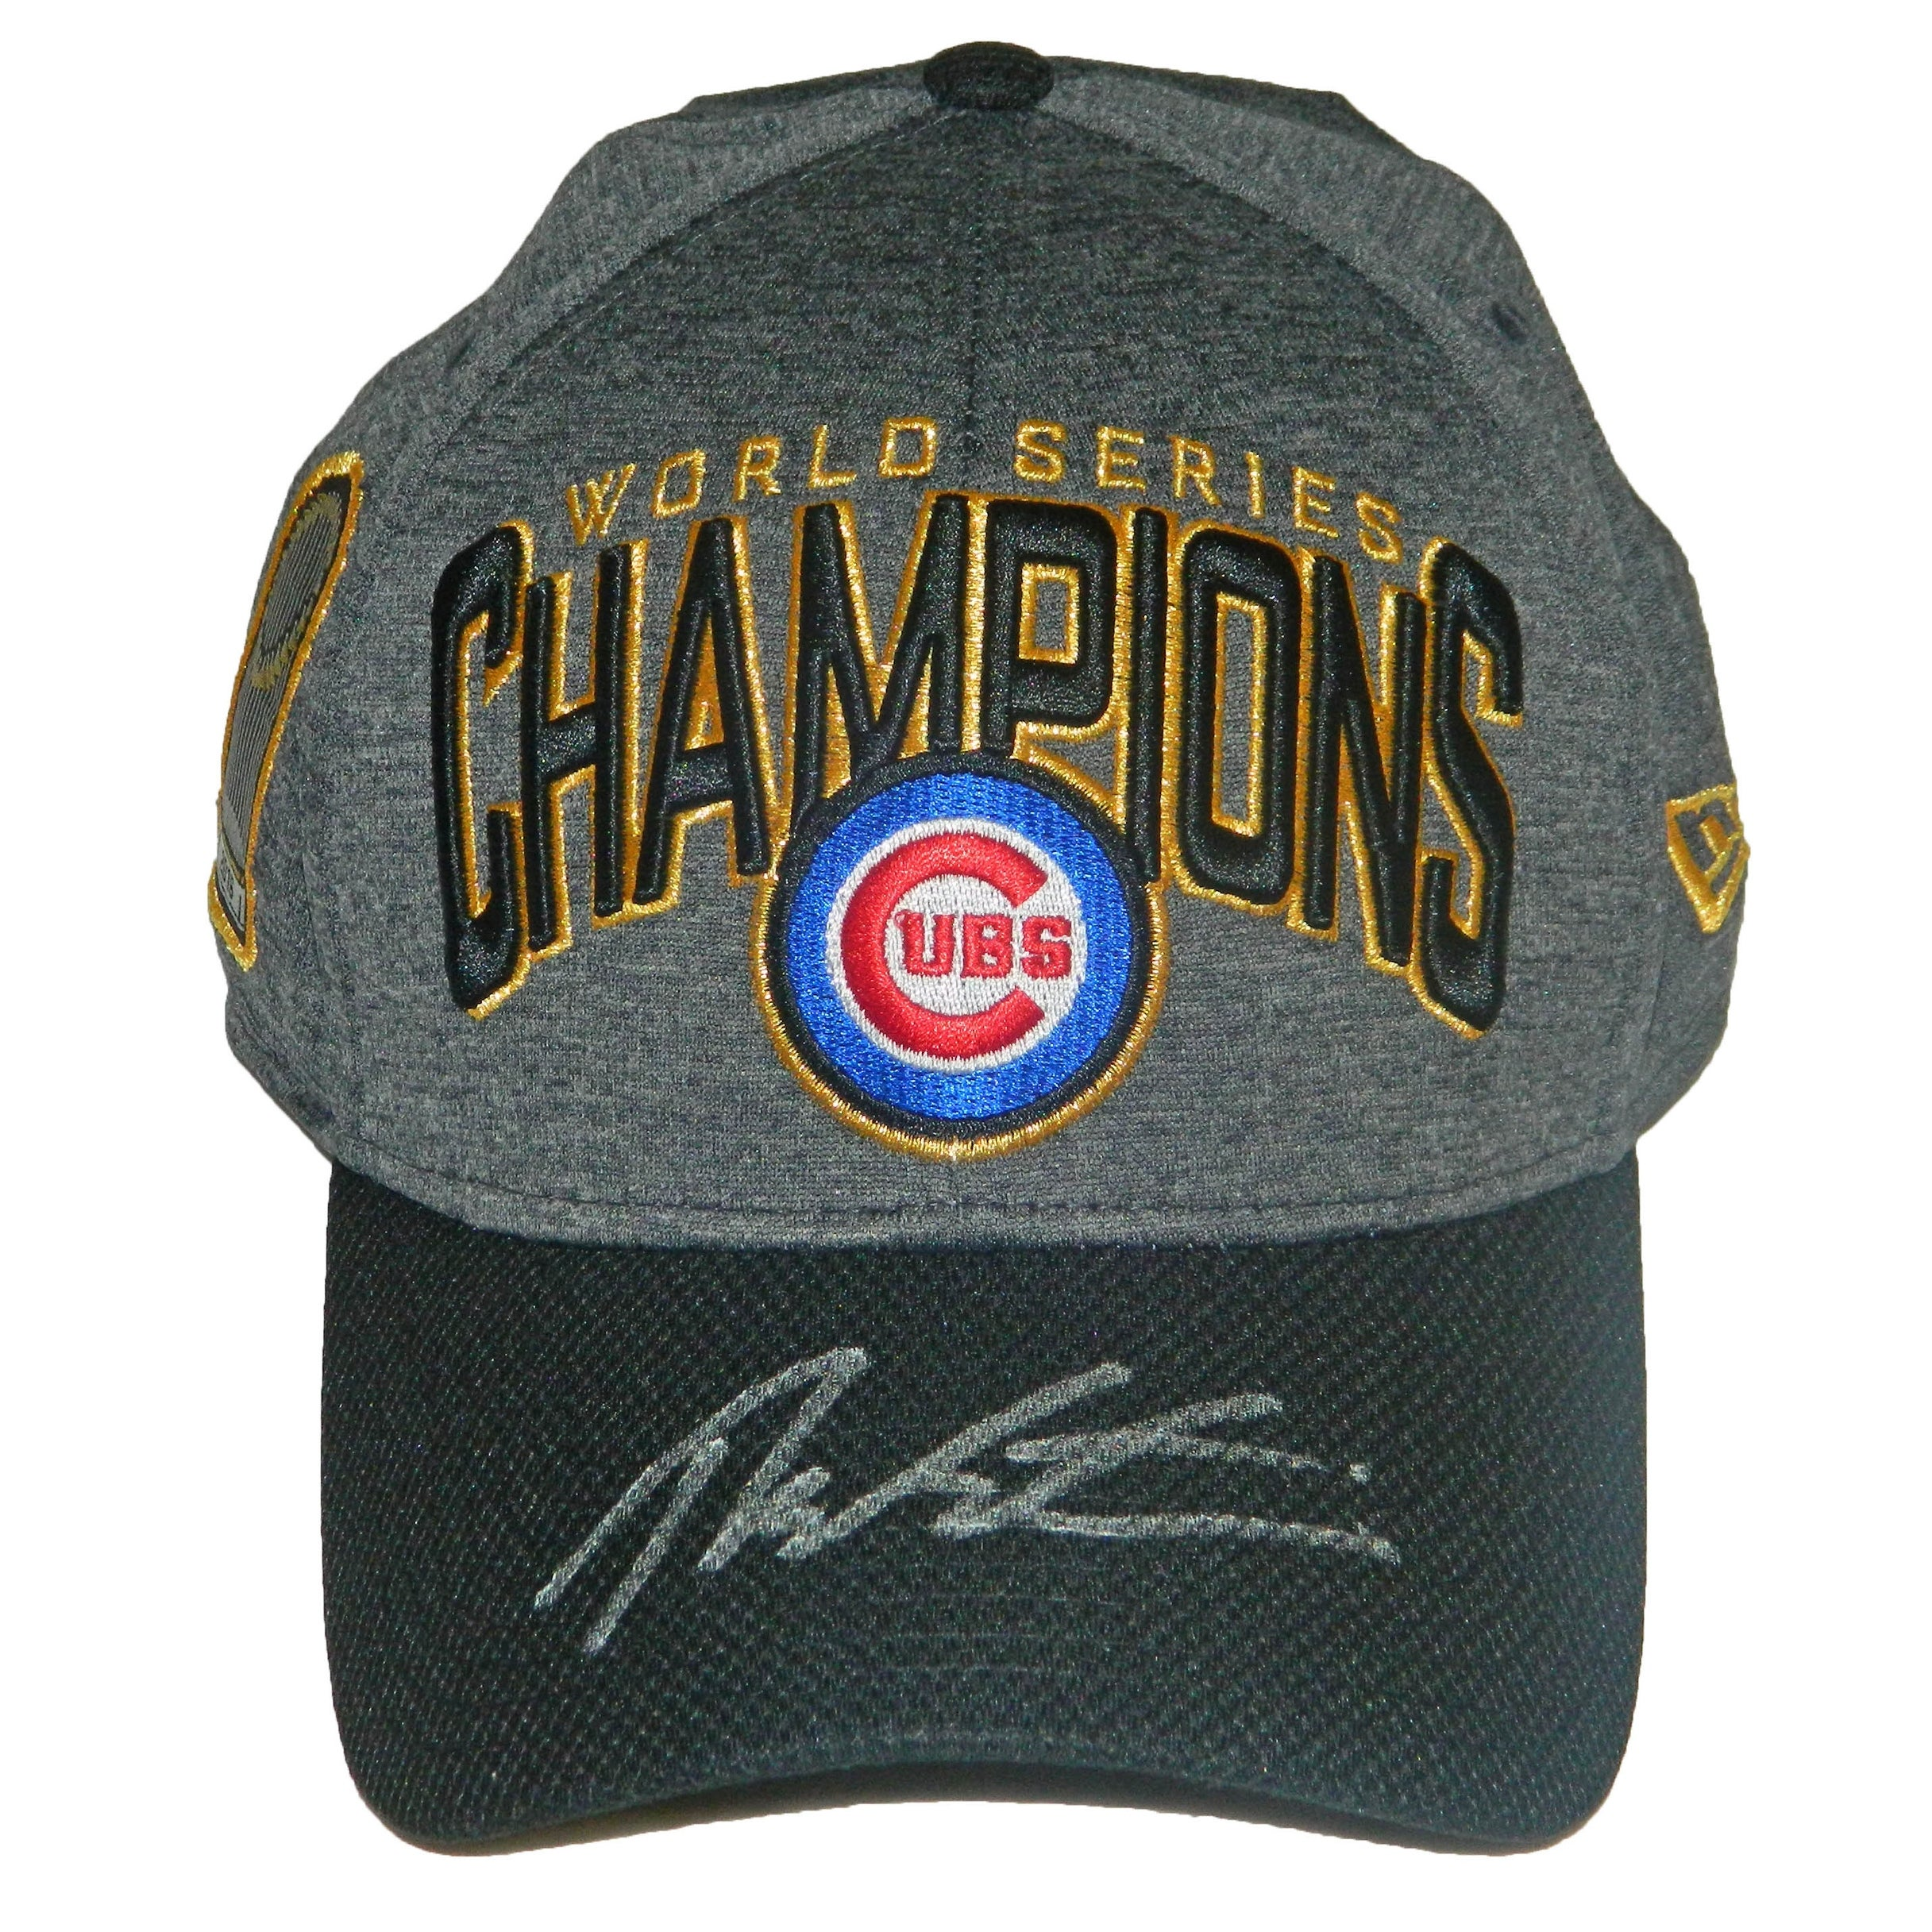 e0fc8fb8ffa2b Shop Theo Epstein Chicago Cubs 2016 World Series Champions New Era Locker  Room Hat - Free Shipping Today - Overstock - 17974592